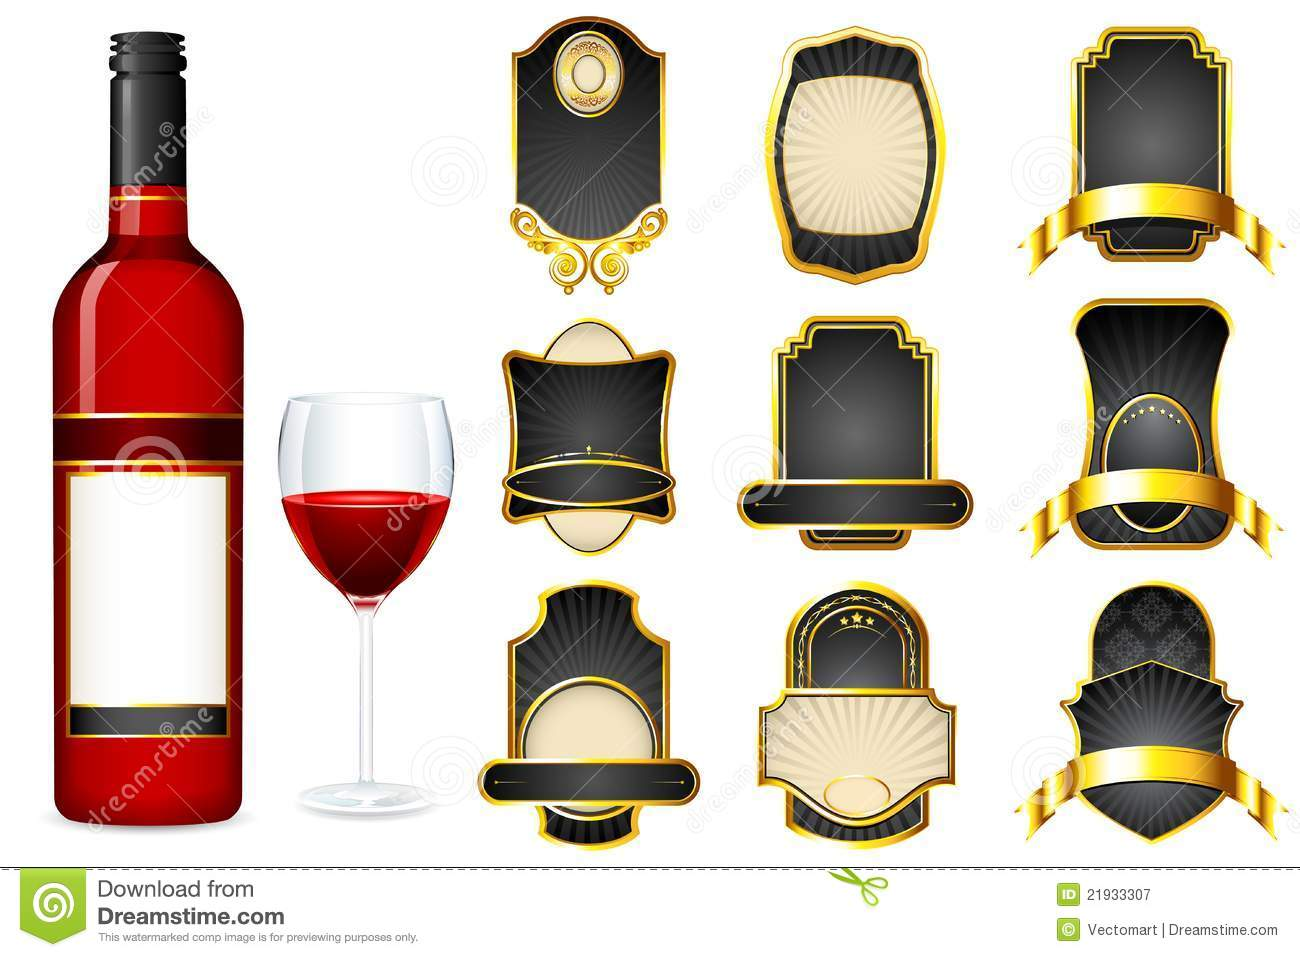 Doc425242 Wine Bottle Labels Template Free Free Printable – Wine Bottle Labels Template Free